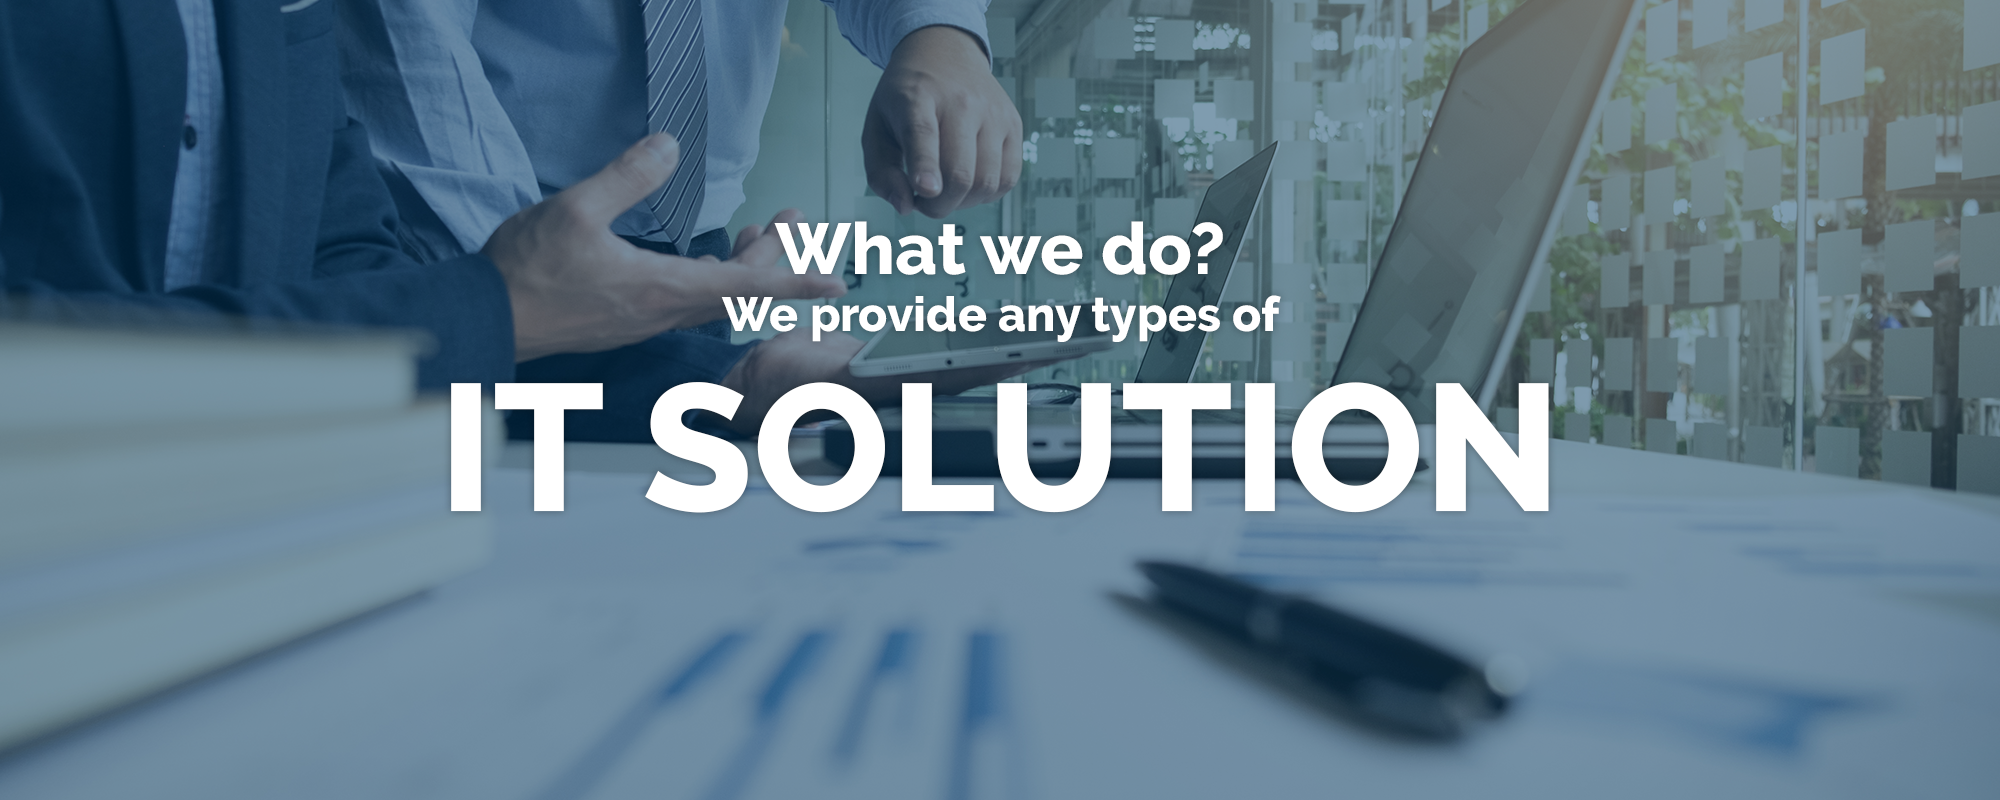 we provide any types of IT solution